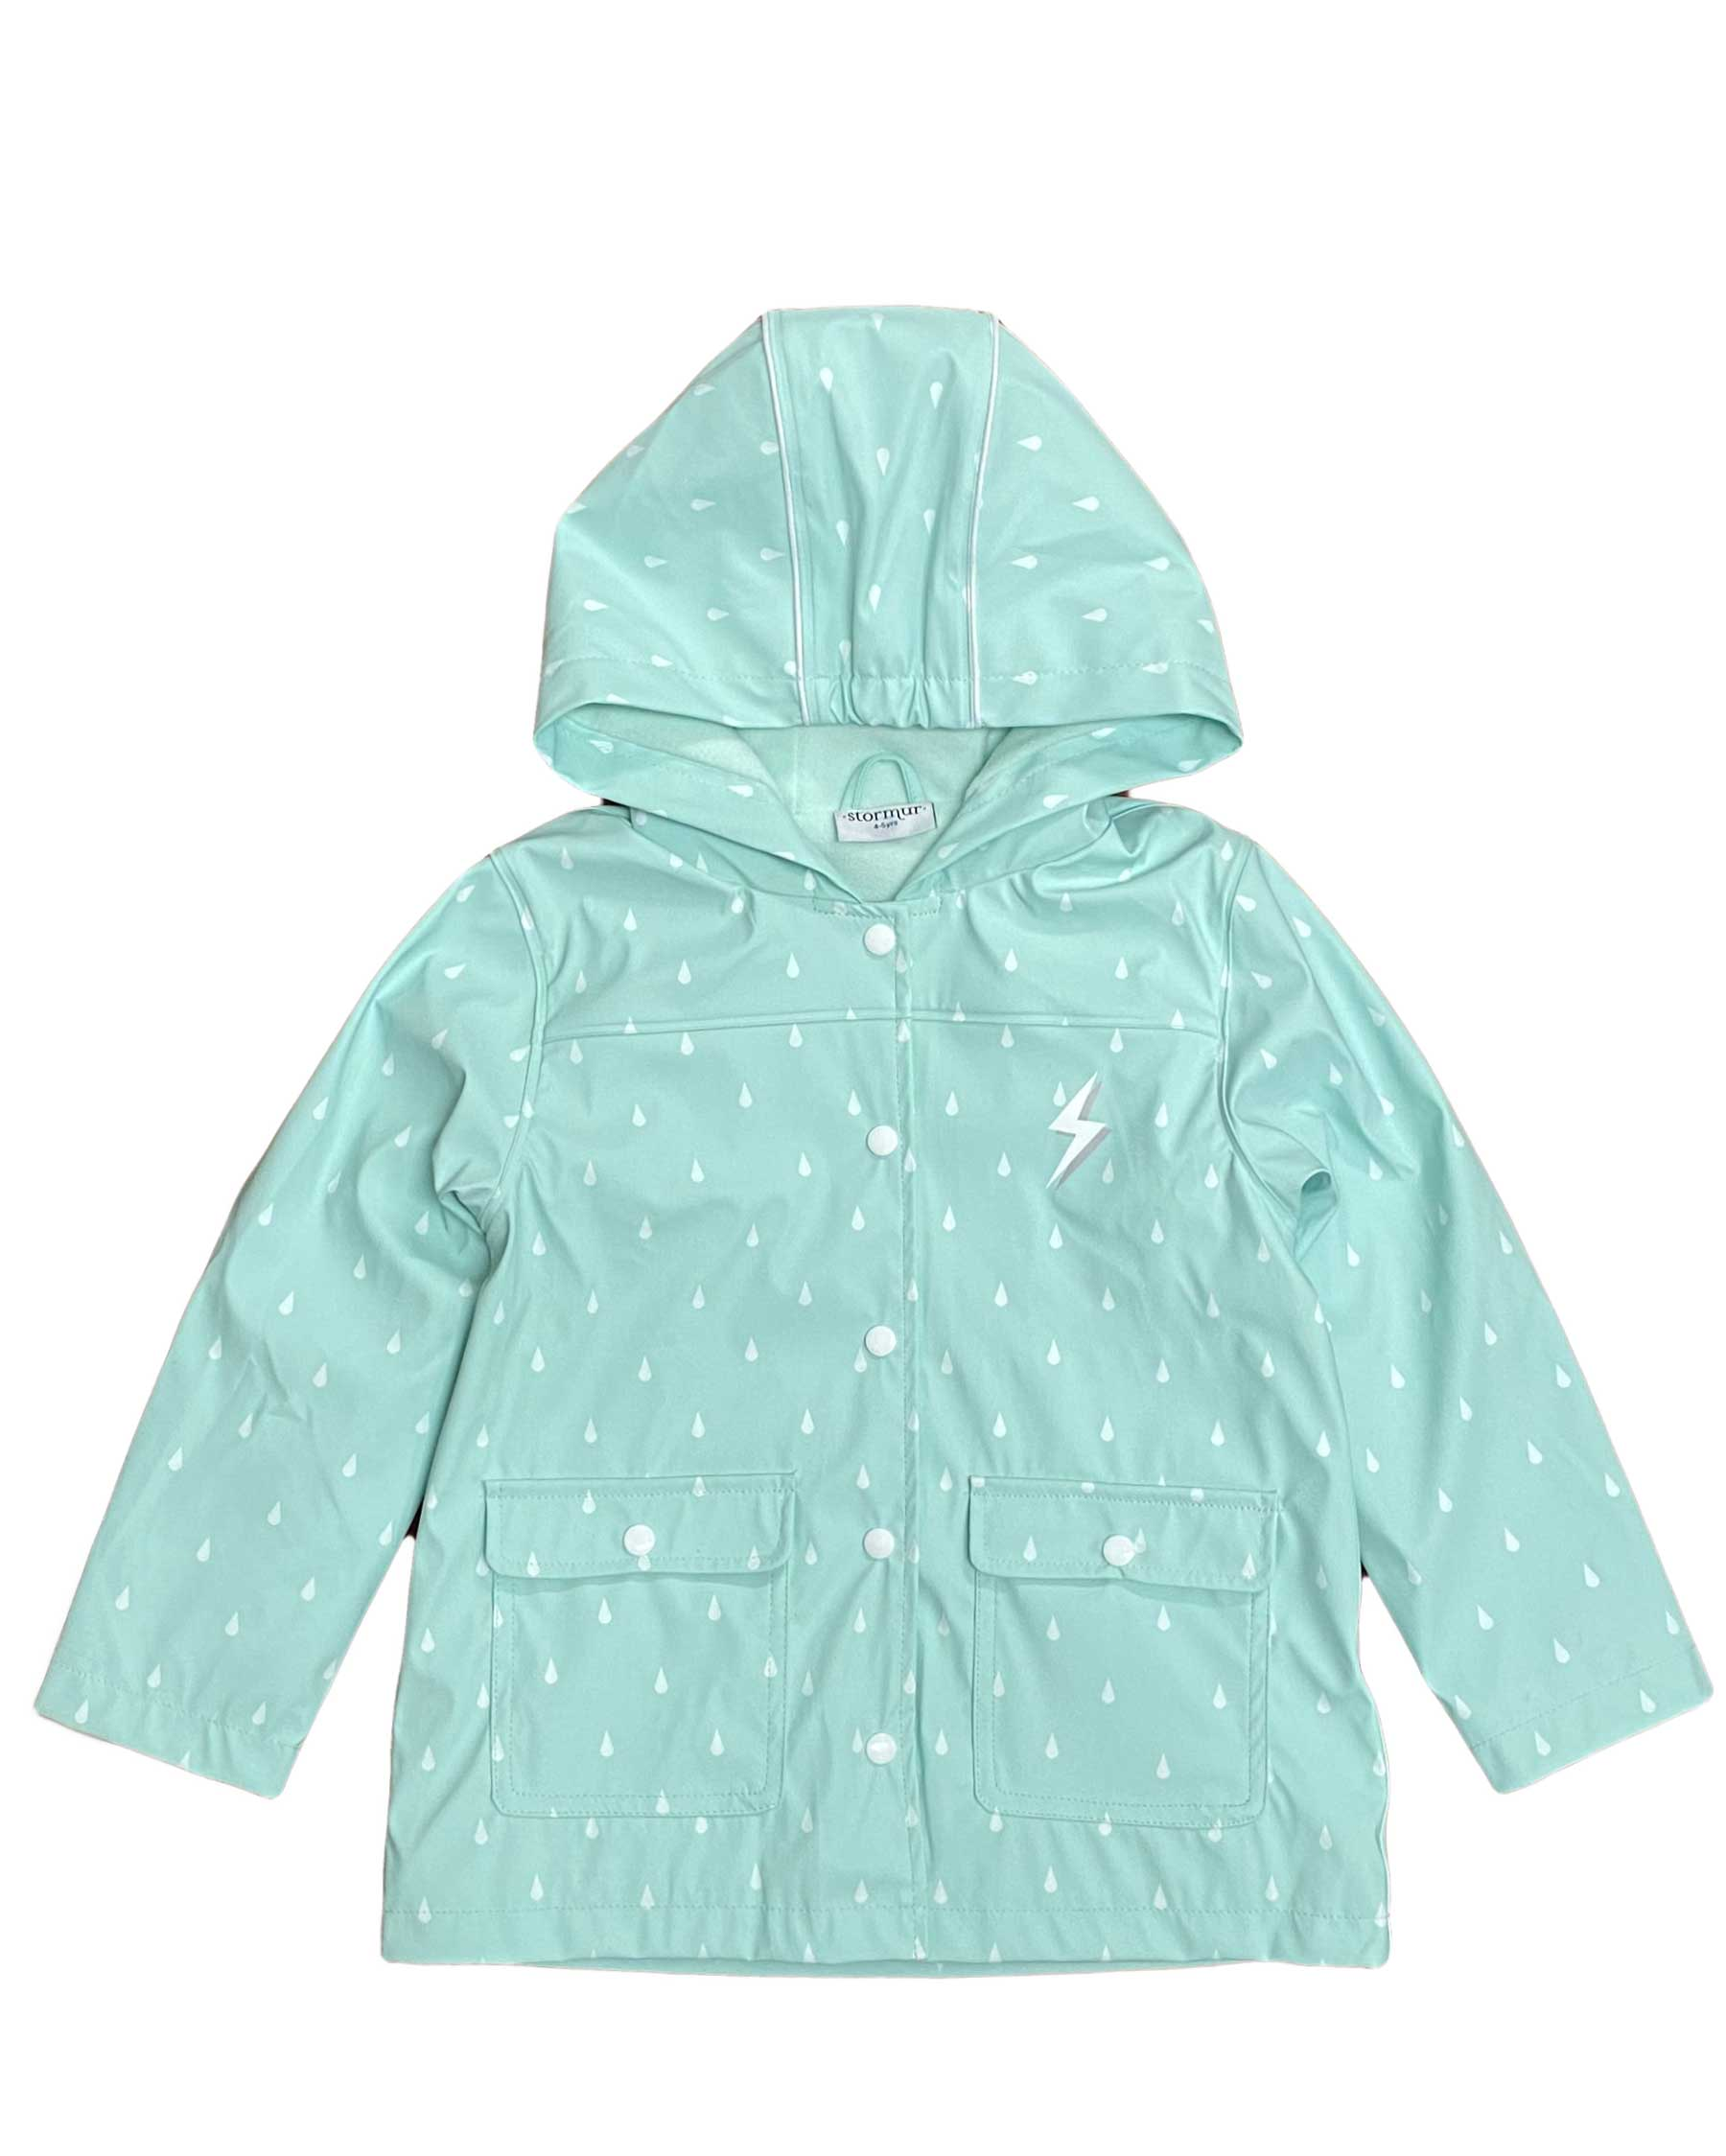 Misty Rain Waterproof Raincoat